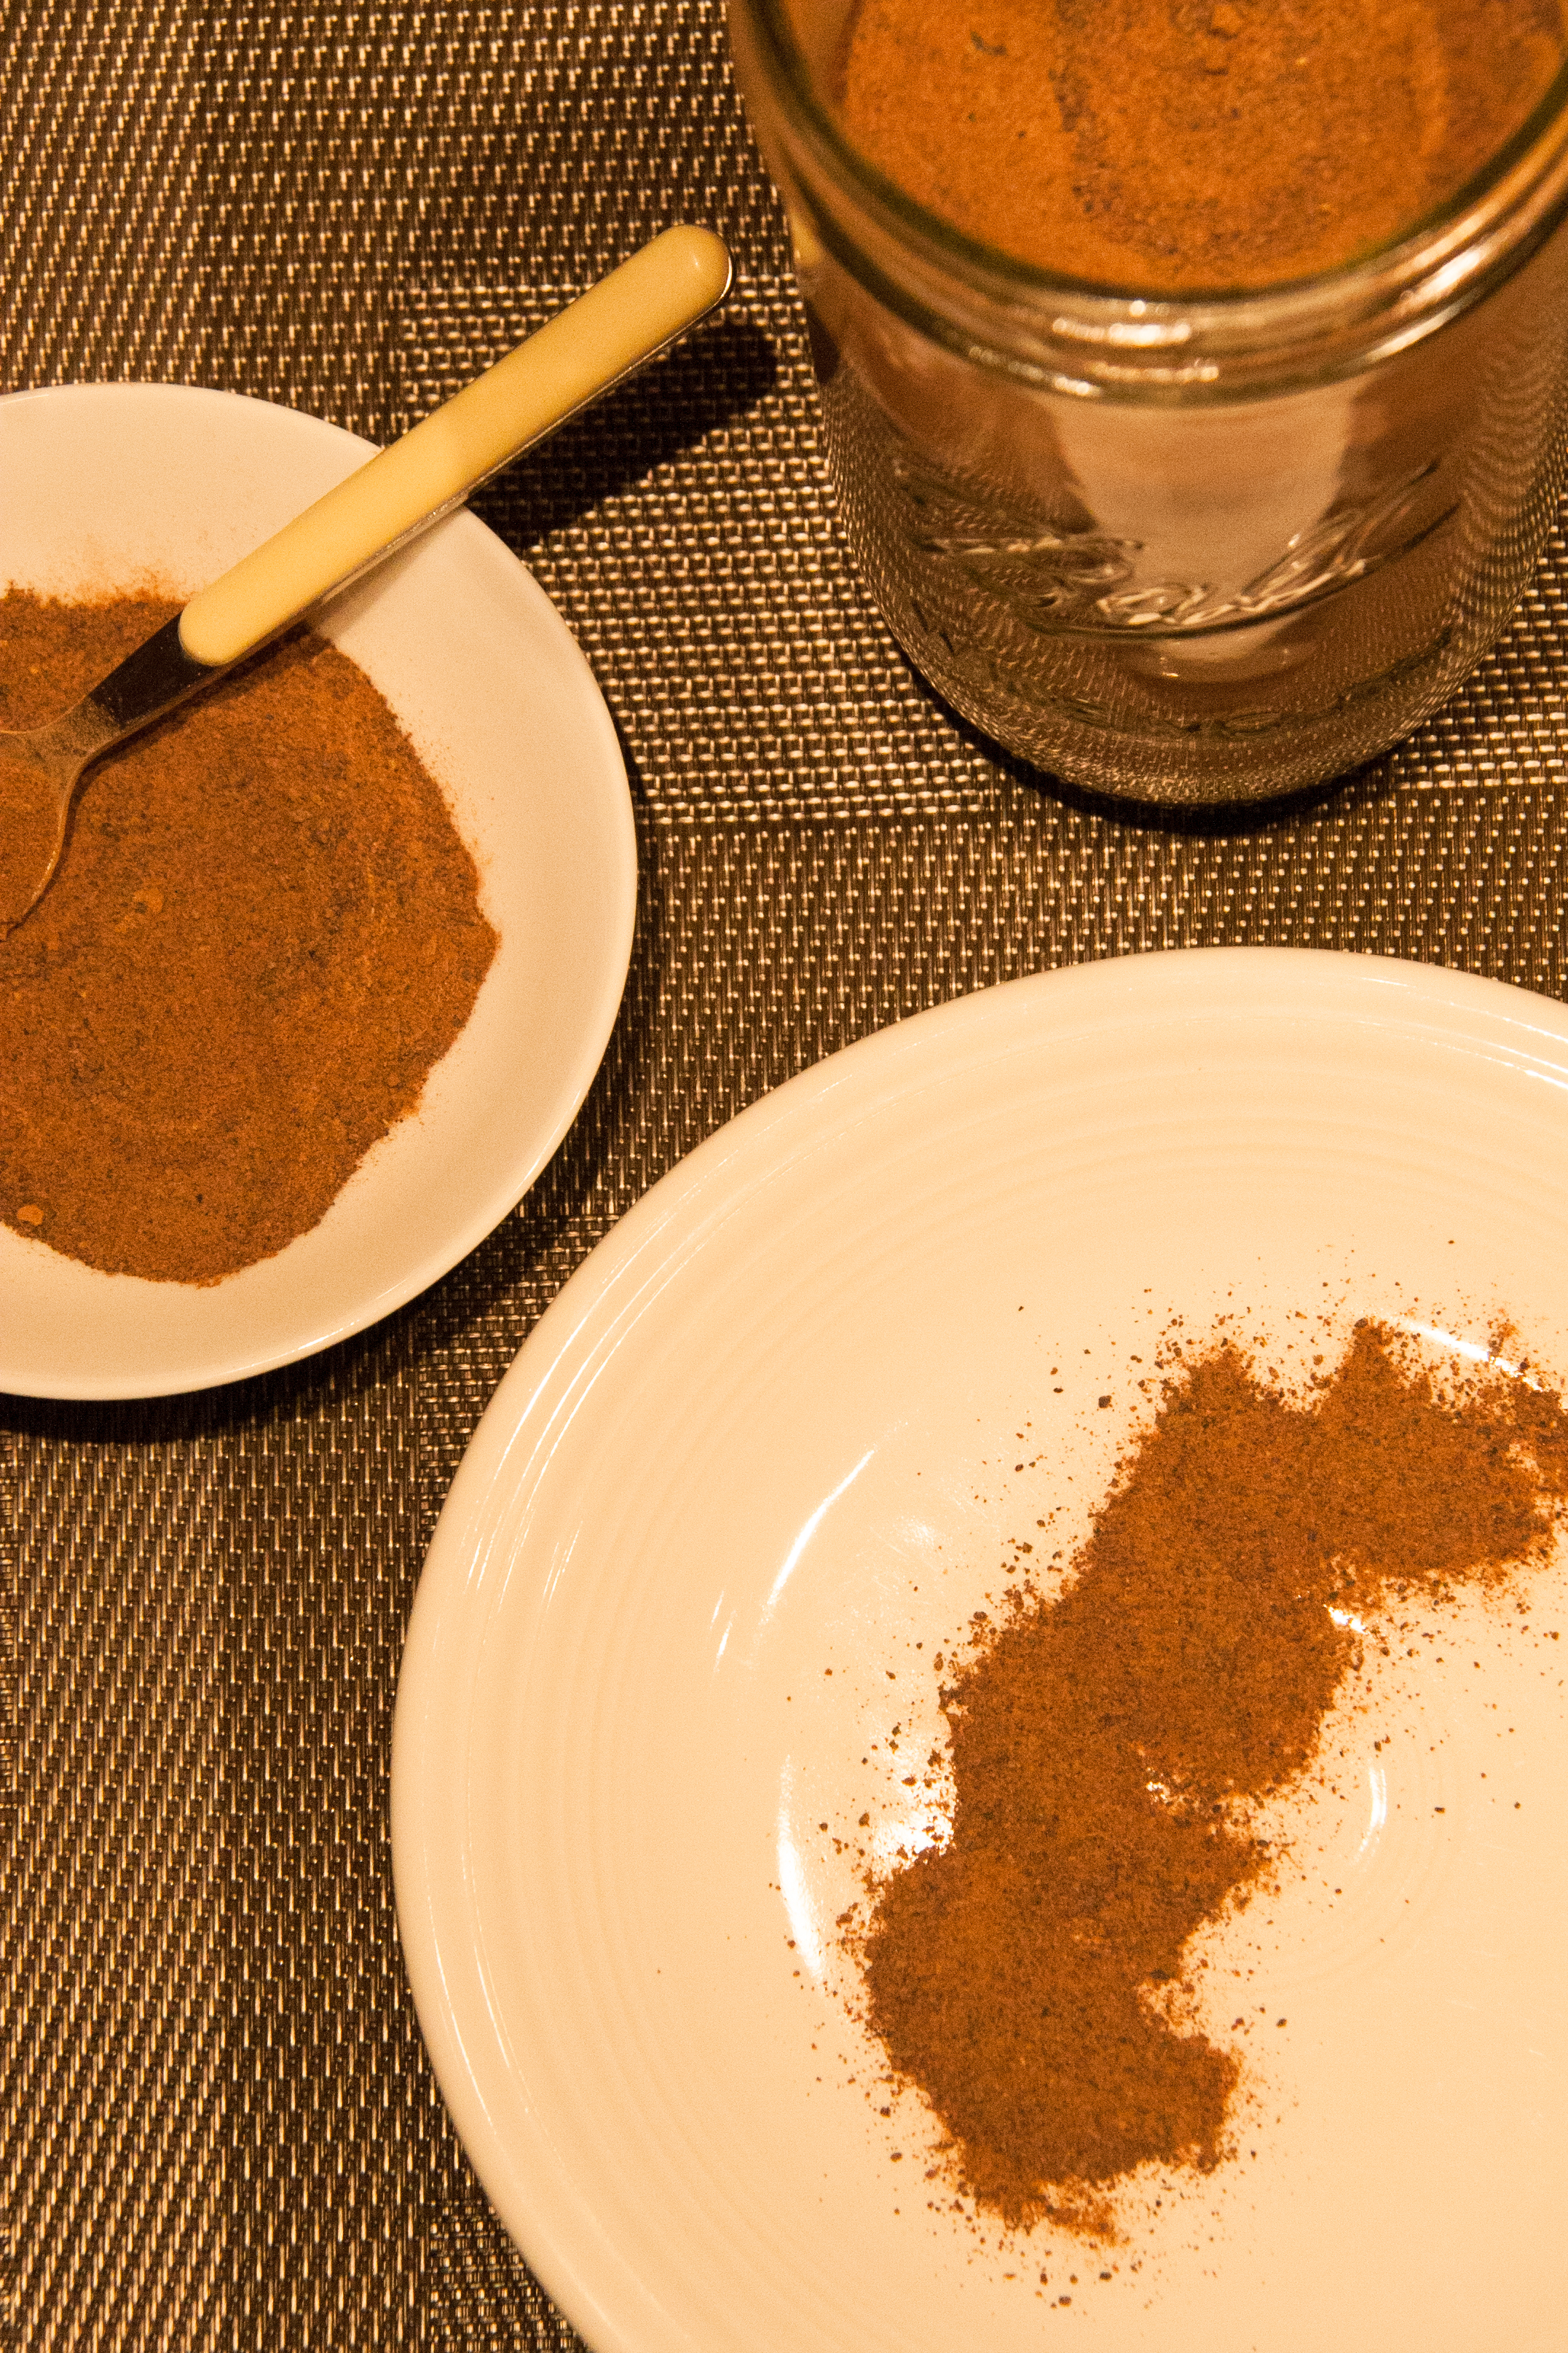 Make Your Own Carob Powder: a Step by Step Guide